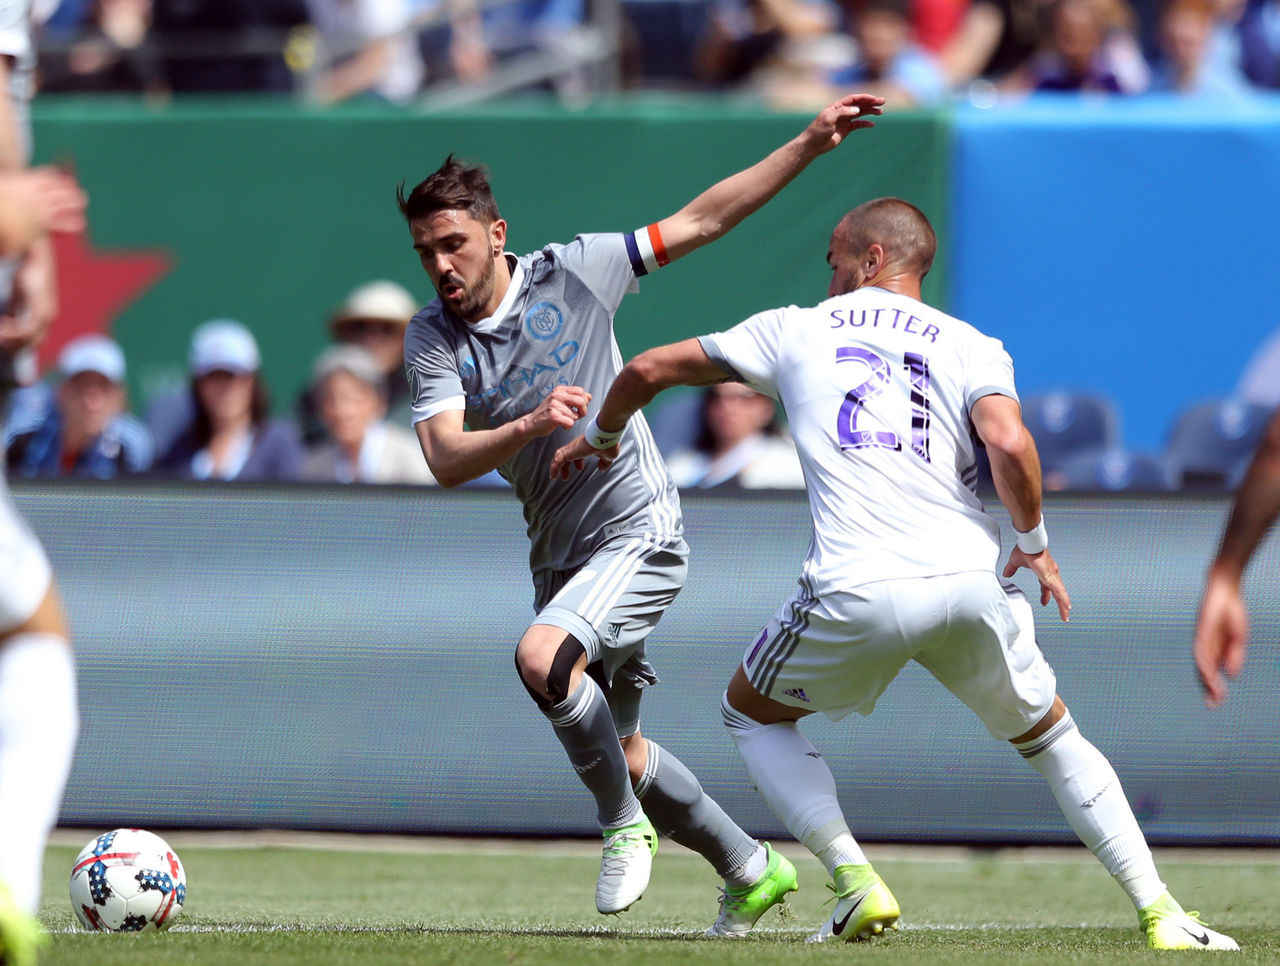 Cropped 2017 04 23t185914z 2074937039 nocid rtrmadp 3 mls orlando city sc at new york city fc